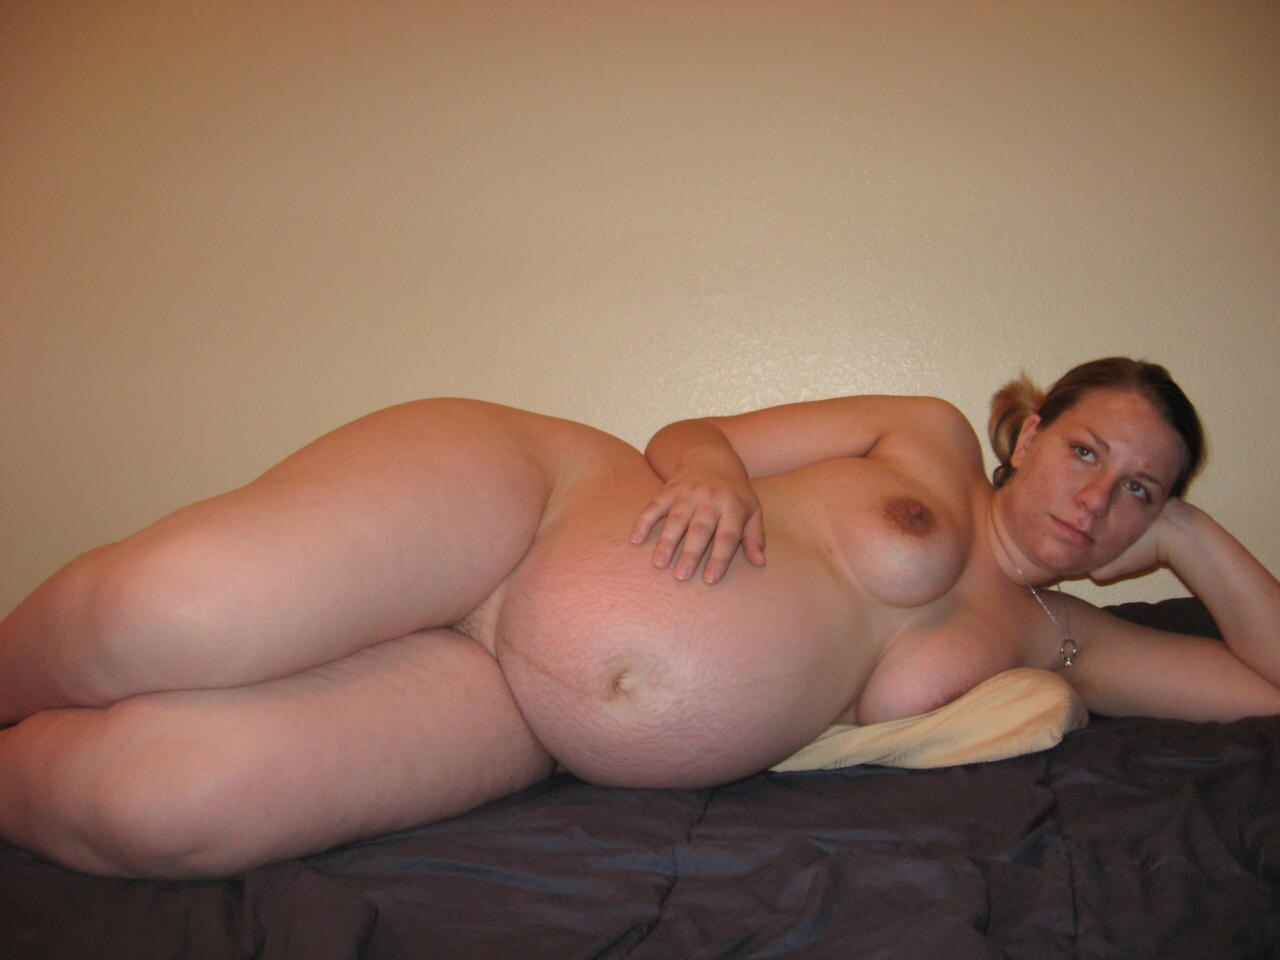 Do Cams With Pregnant MILFs Get More Visits?